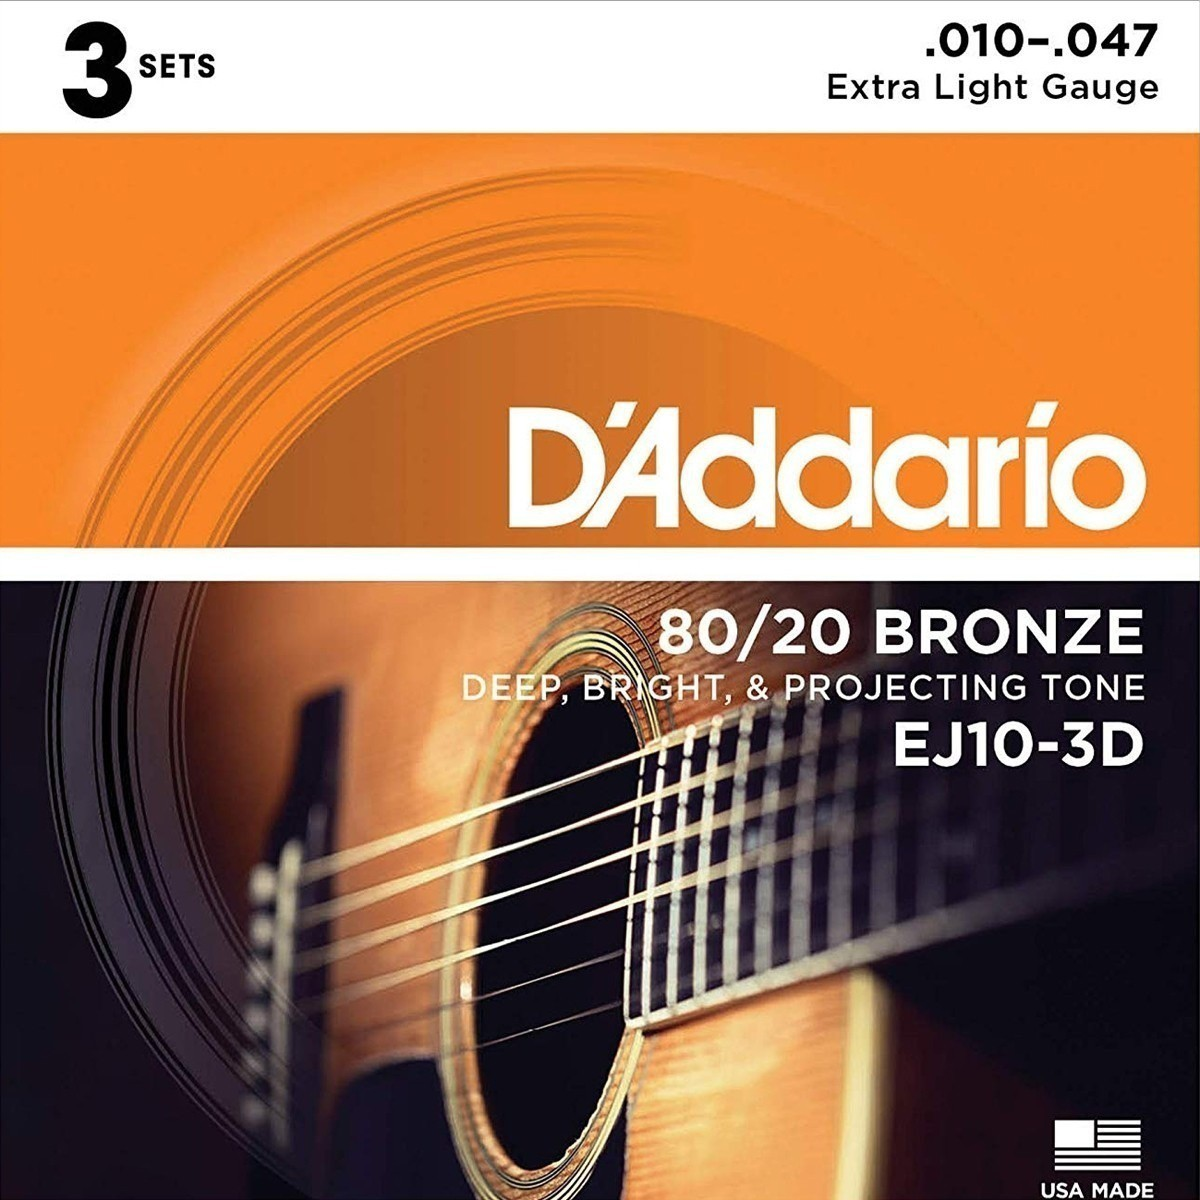 Encordoamento D'Addario 80/20 Bronze .010-.047